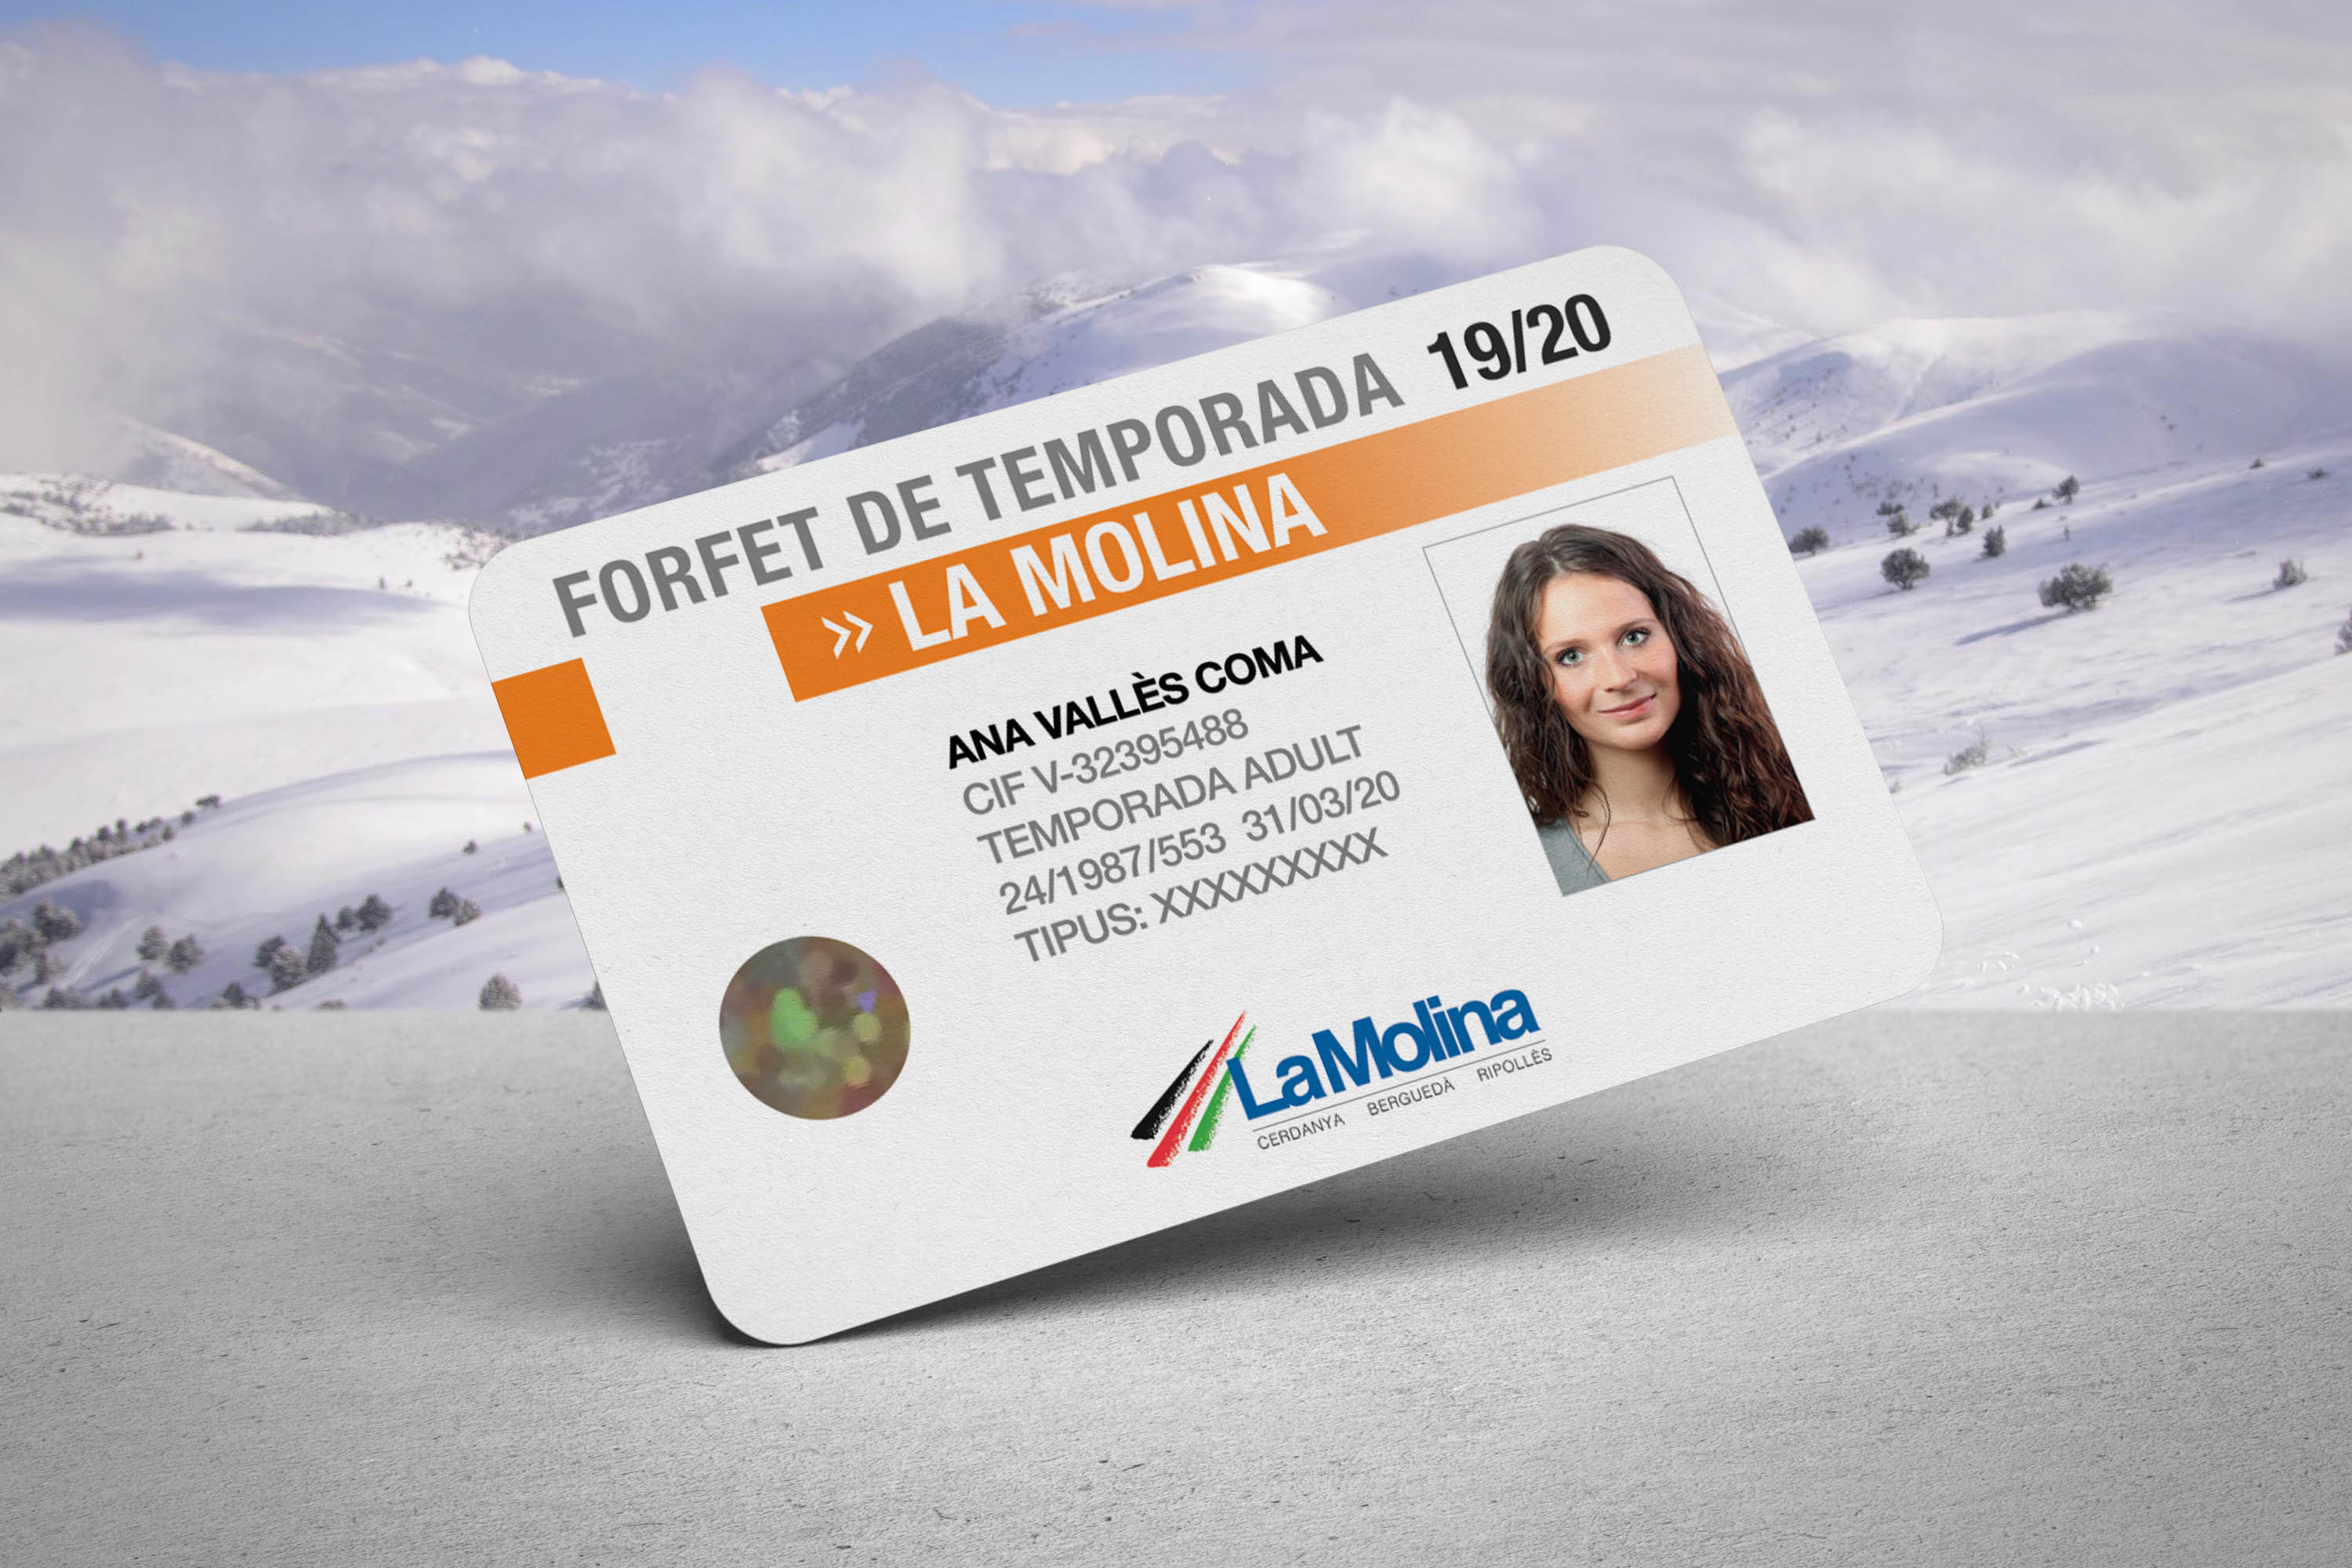 La Molina season ski pass